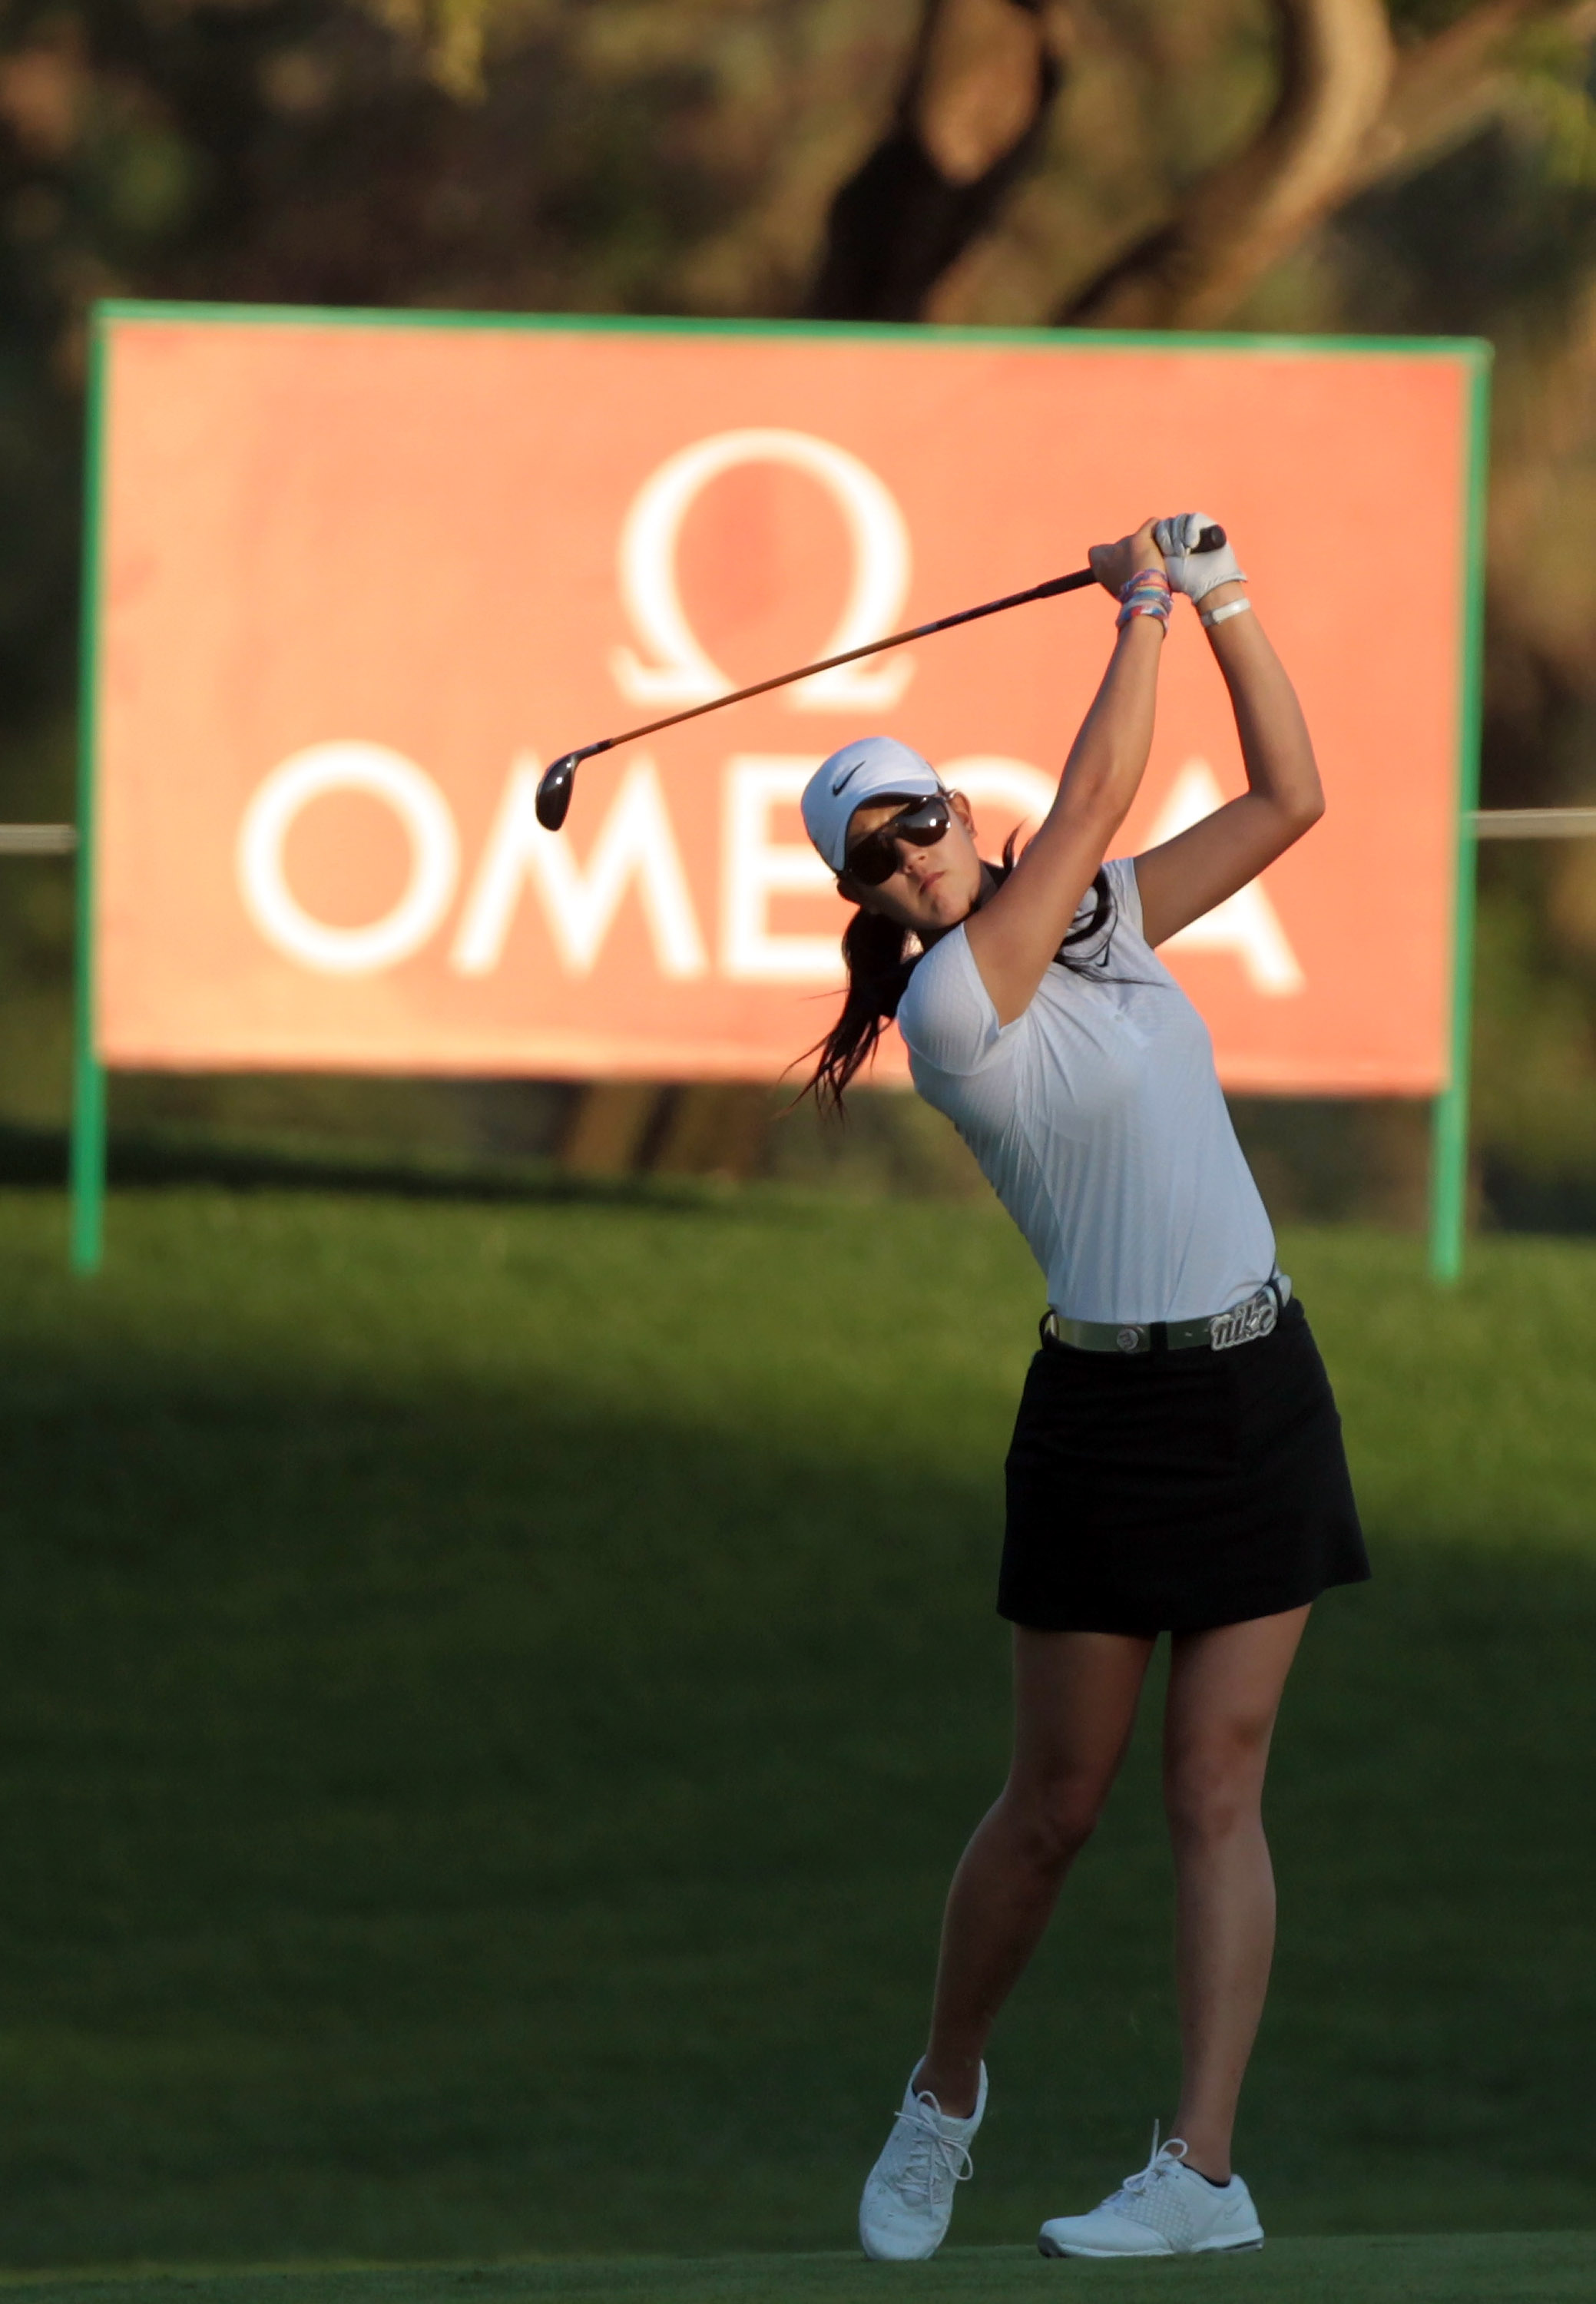 DUBAI, UNITED ARAB EMIRATES - DECEMBER 09:  Michelle Wie of the USA plays her second shot at the 18th hole during the second round of the 2010 Omega Dubai Ladies Masters on the Majilis Course at The Emirates Golf Club on December 9, 2010 in Dubai, United